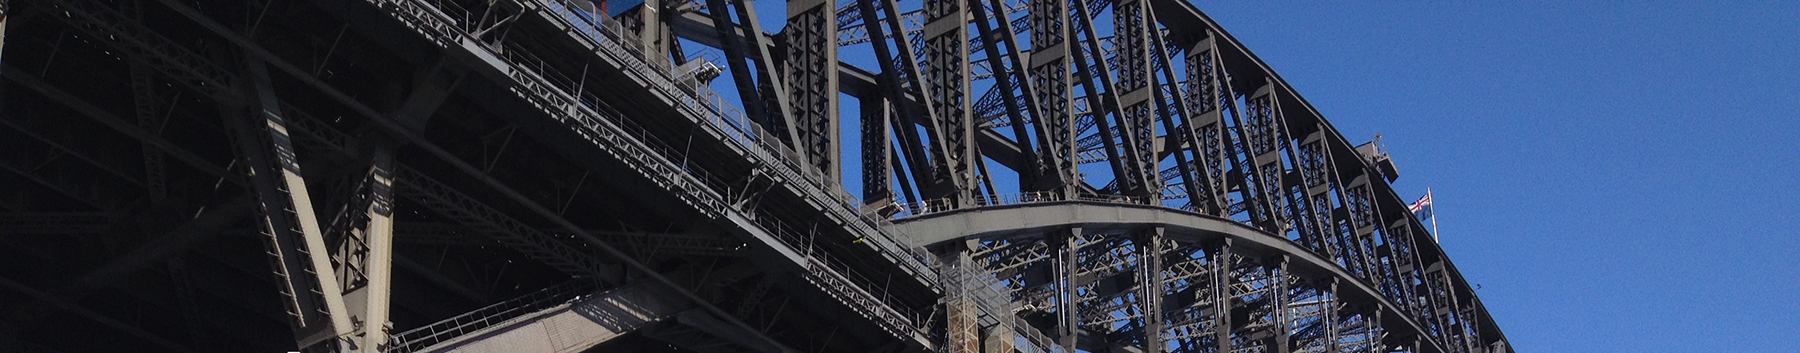 Sydney Harbour Bridge up close on our Sydney Sightseeing Tours